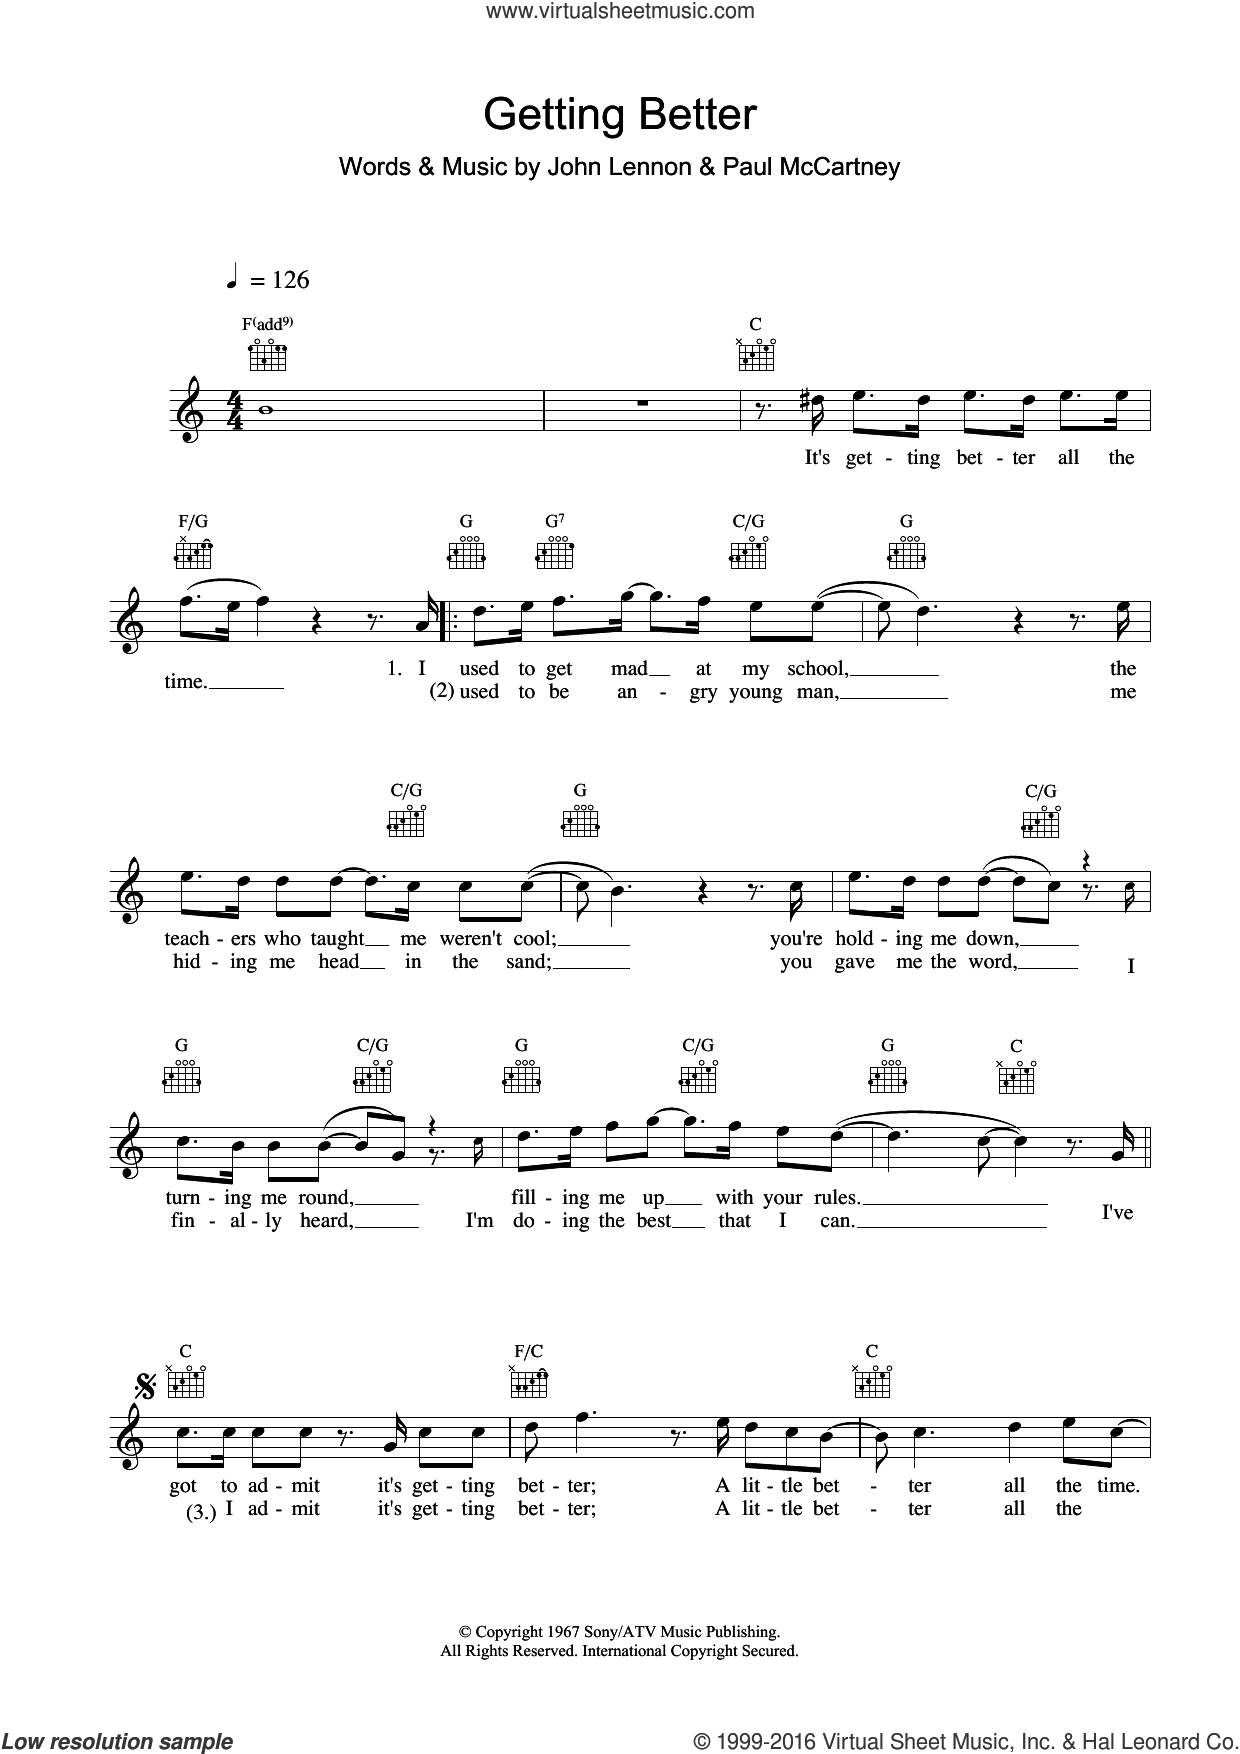 Getting Better sheet music for voice and other instruments (fake book) by The Beatles, John Lennon and Paul McCartney, intermediate skill level